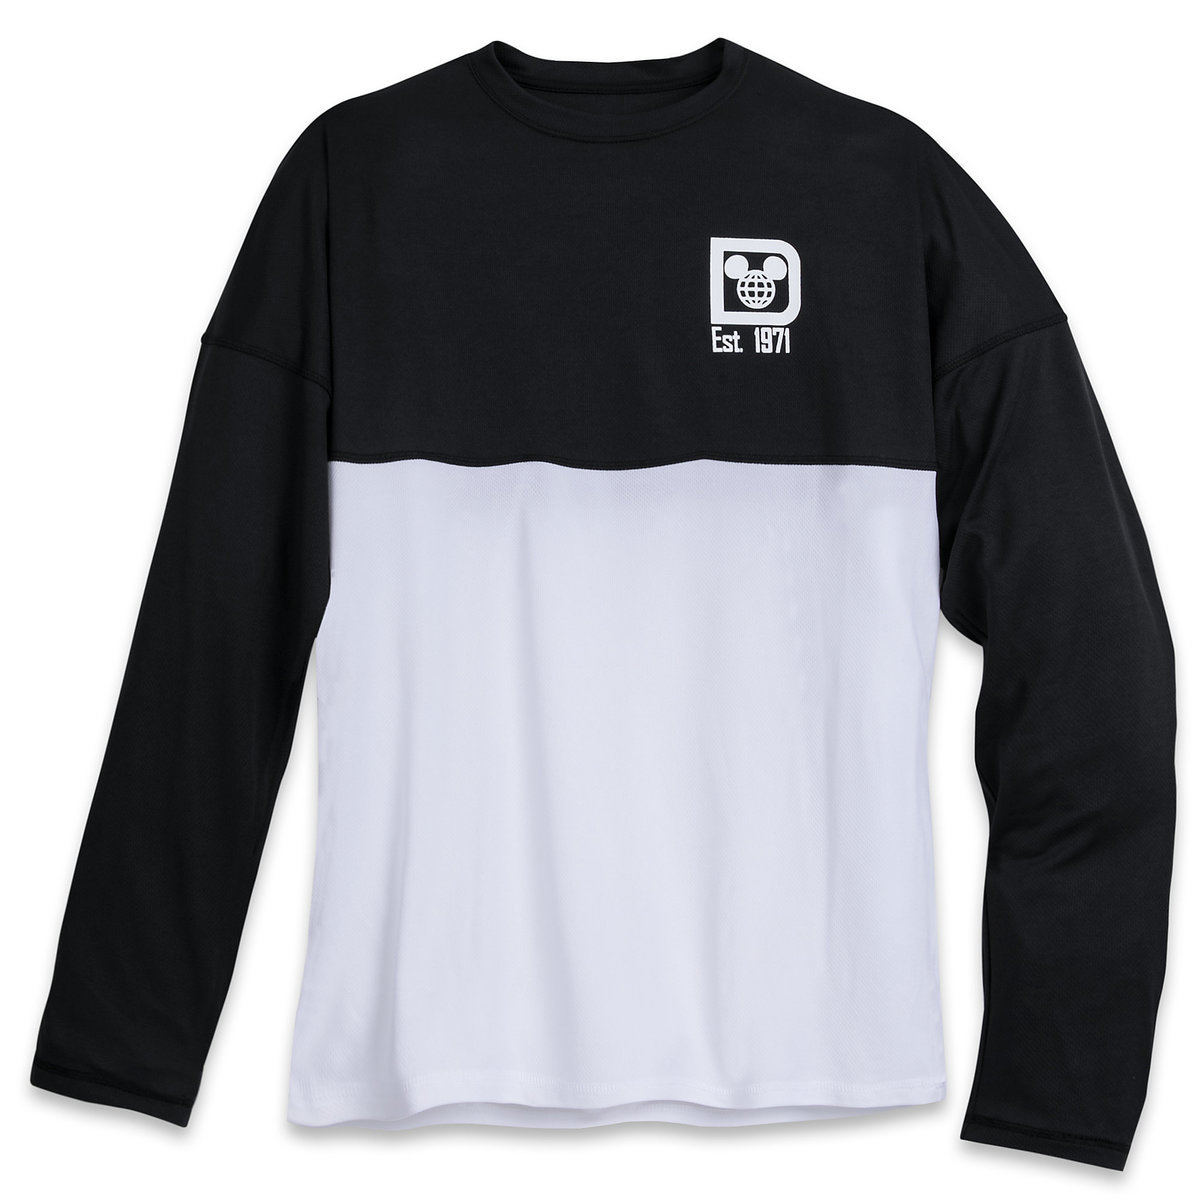 1f866e8a376 Product Image of Walt Disney World Mesh Spirit Jersey for Adults - Black  and White #